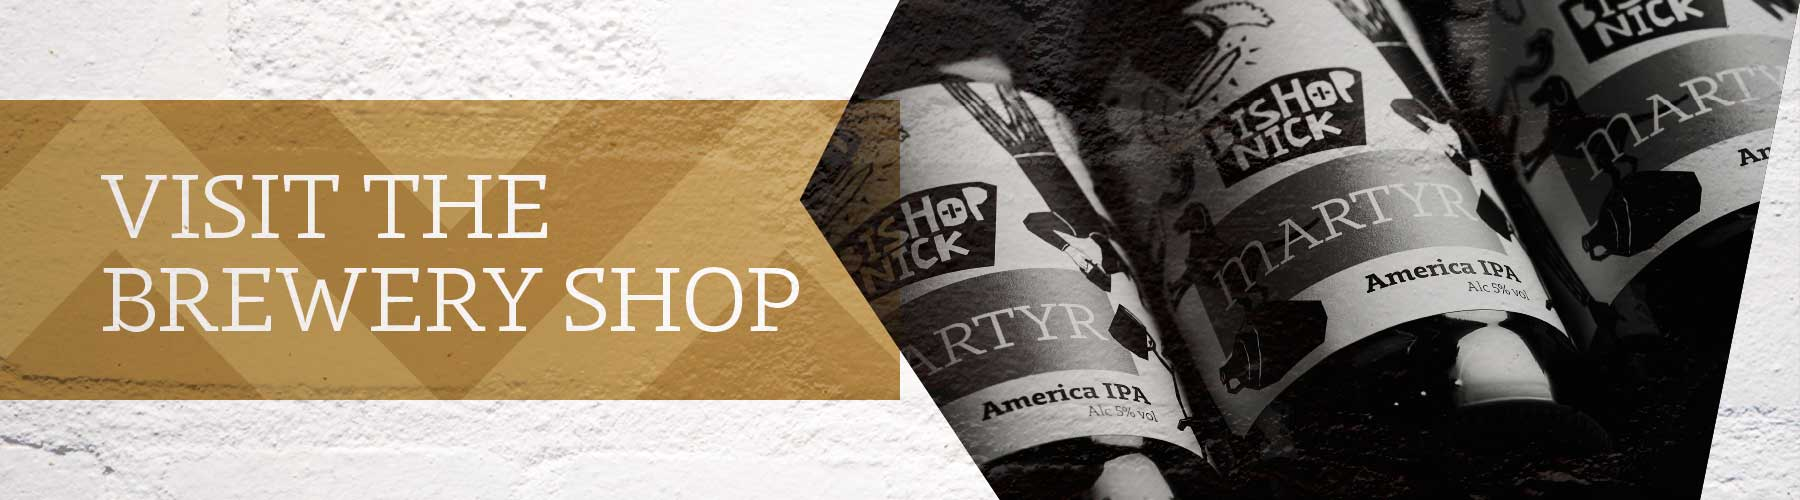 Visit the Bishop Nick Brewery Shop